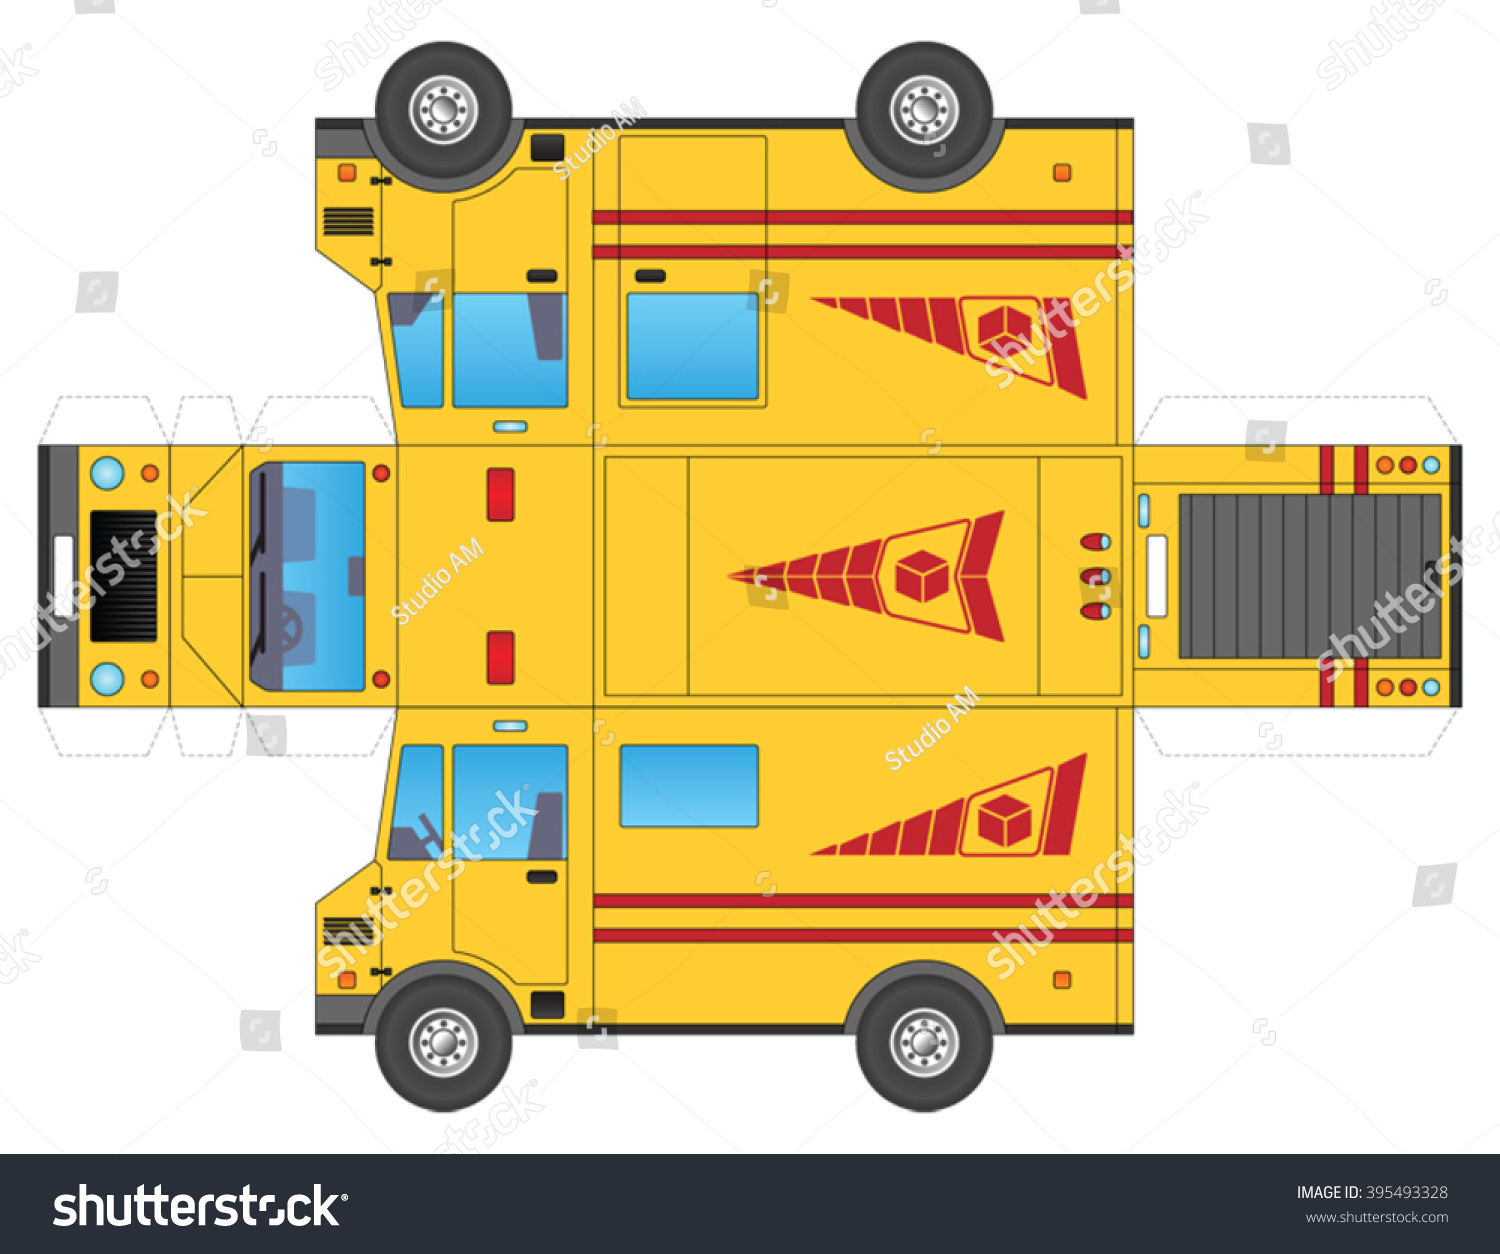 Parcel Delivery Truck Template To Cut Out And Glue Into A 3D Model